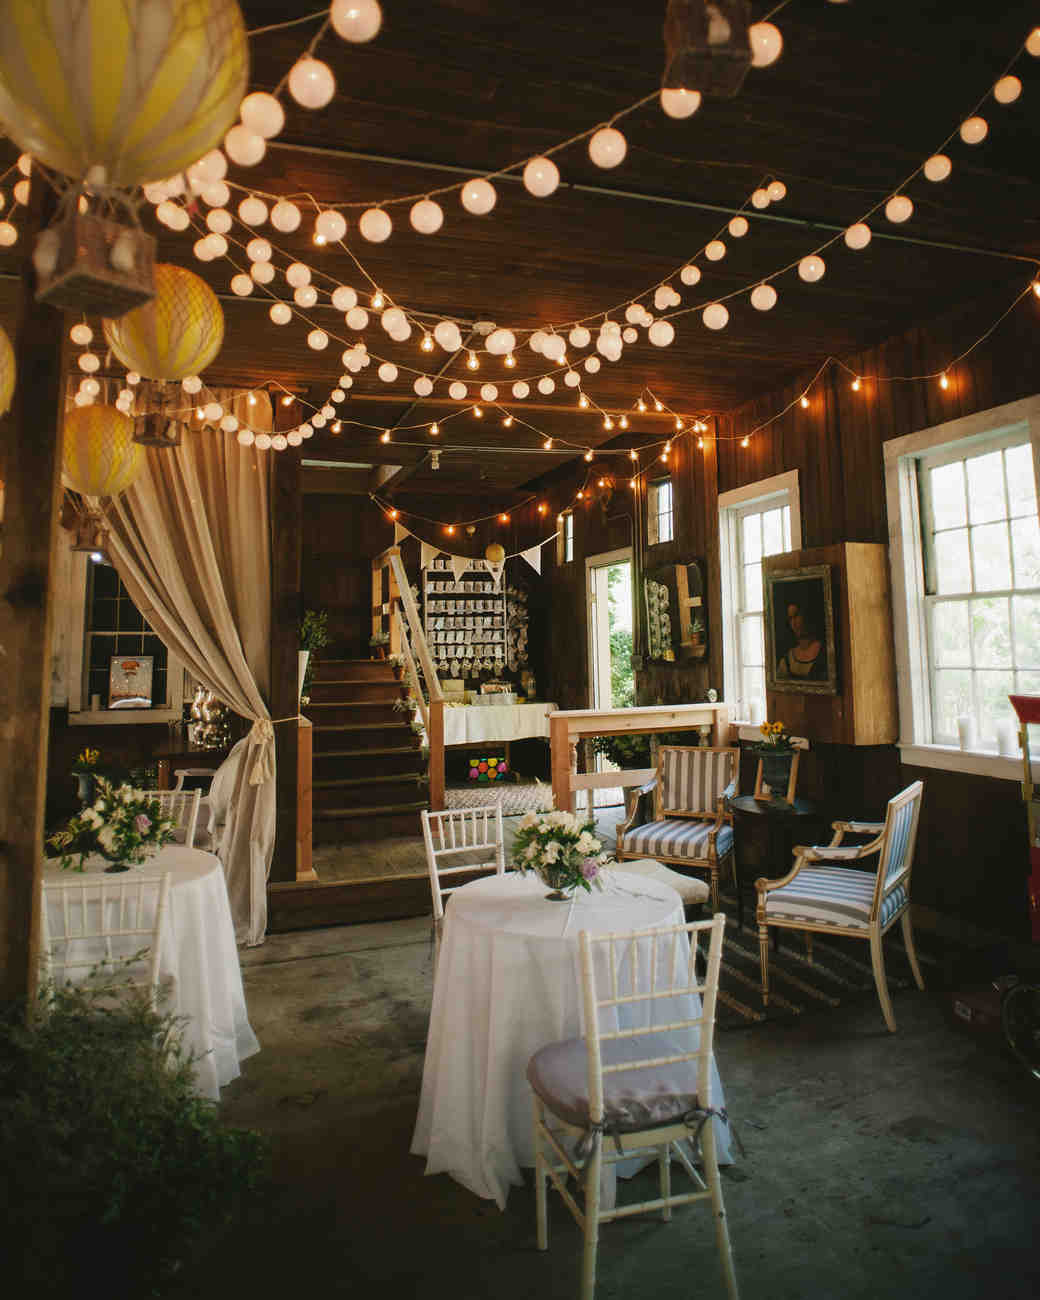 Barn Weddings: A Vintage-Inspired Barn Wedding Woodstock, Connecticut